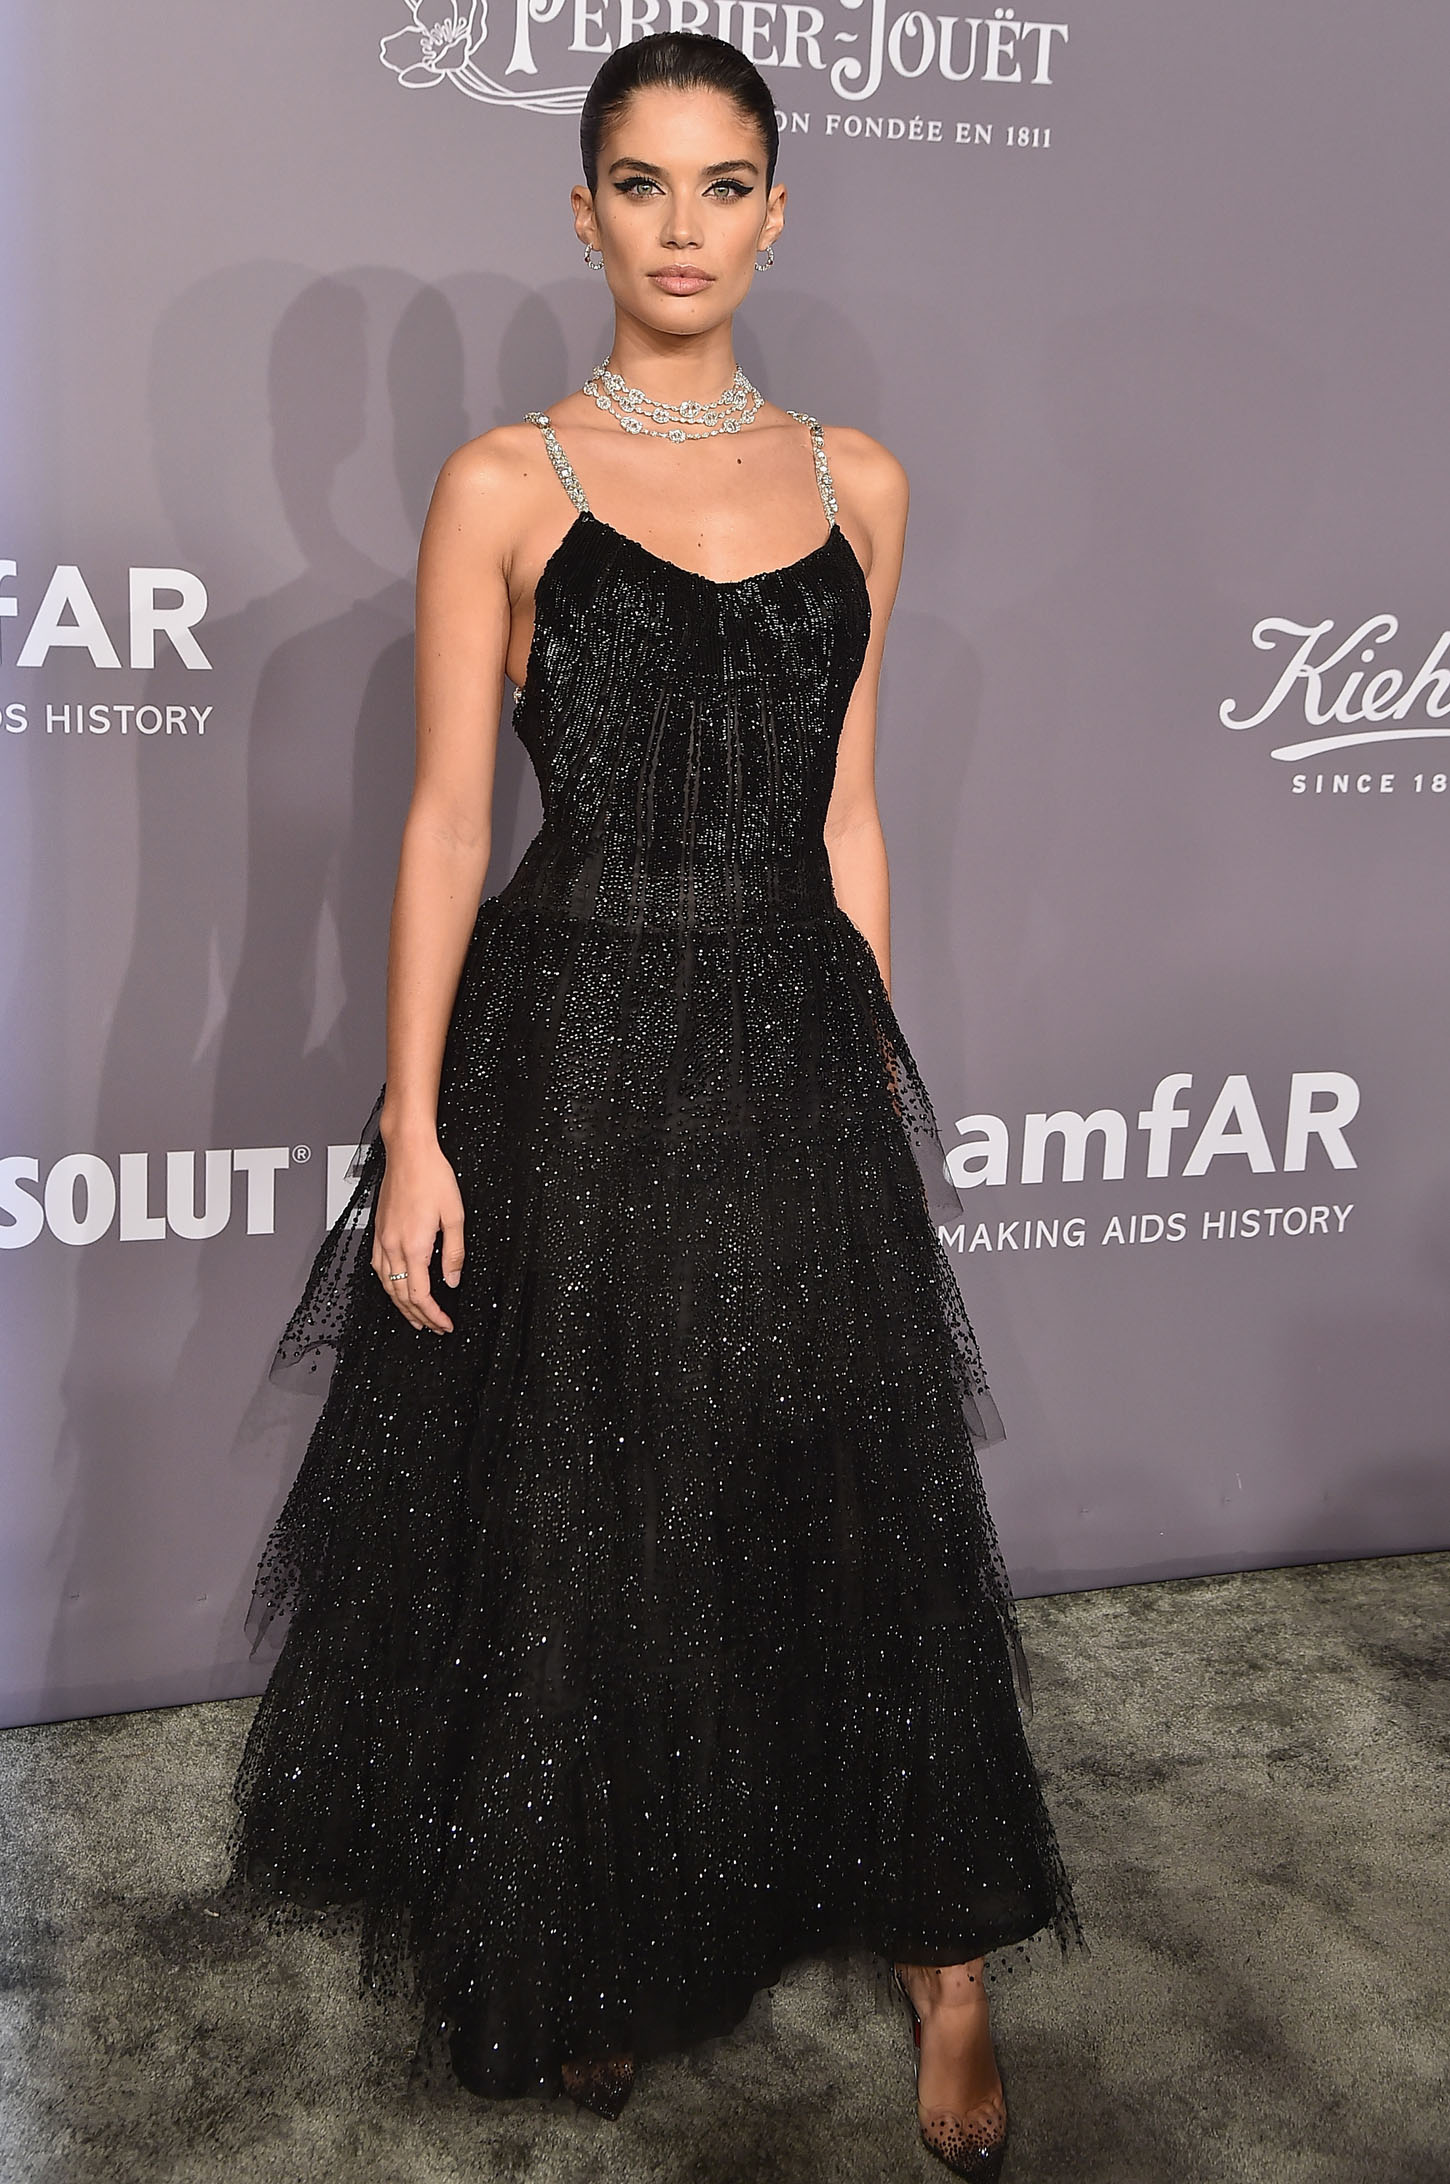 NEW YORK, NY - FEBRUARY 07:  Model Sara Sampaio attends the 2018 amfAR Gala New York at Cipriani Wall Street on February 7, 2018 in New York City.  (Photo by Theo Wargo/Getty Images)